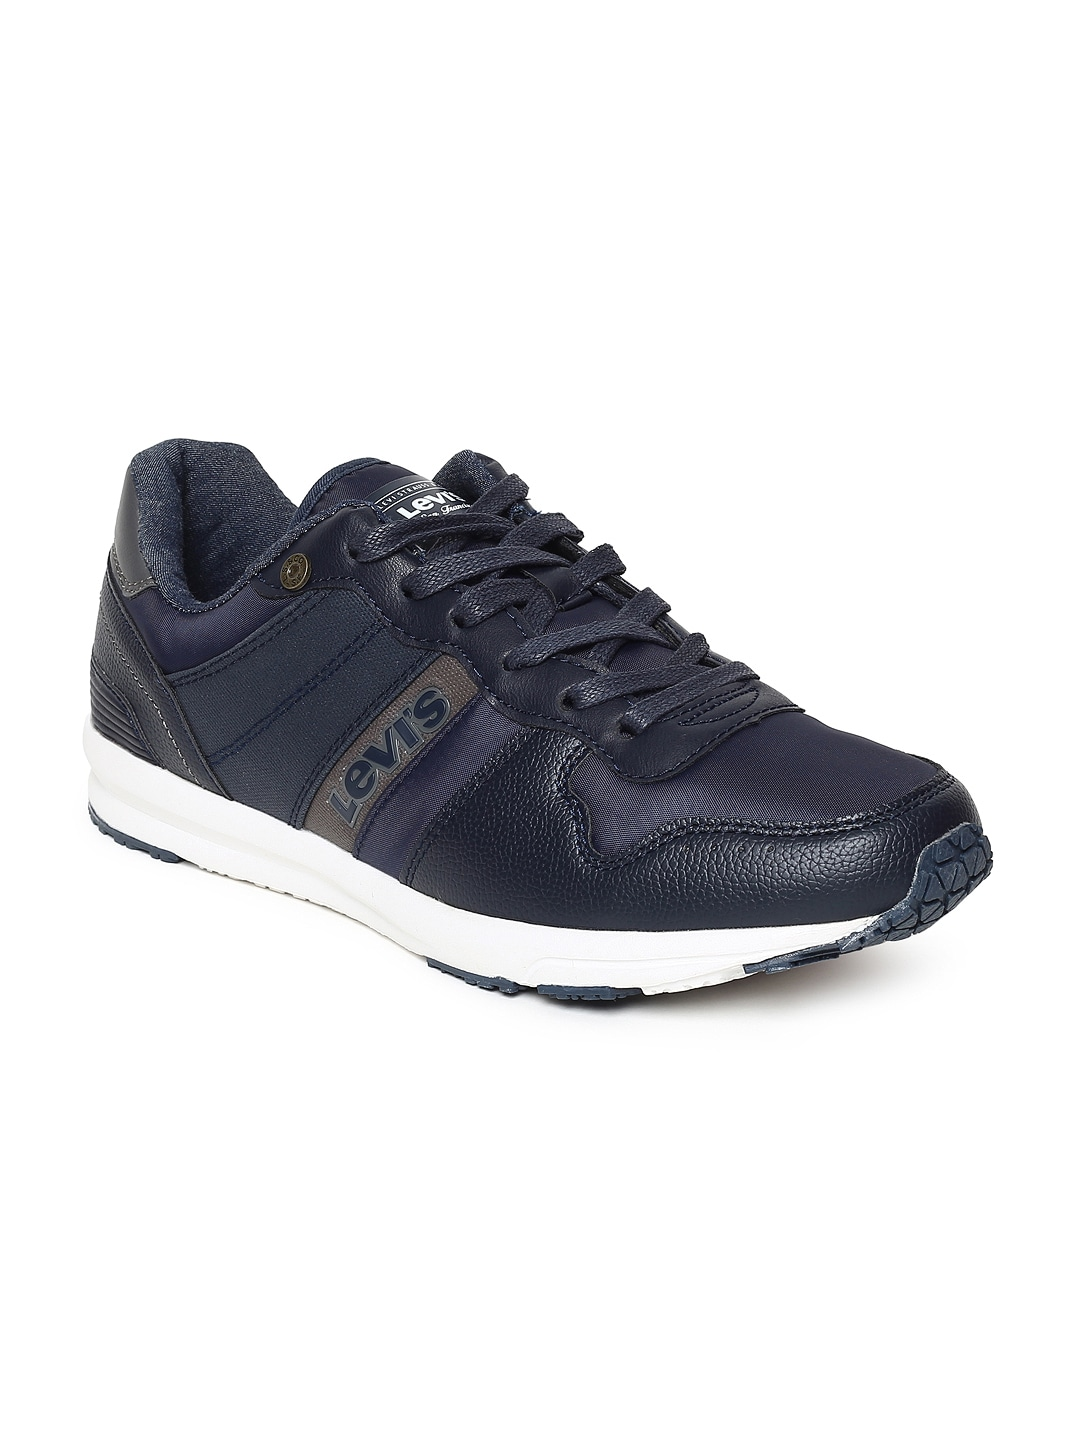 39d42a1db90a0e Levis Casual Shoes - Buy Levis Casual Shoes Online - Myntra